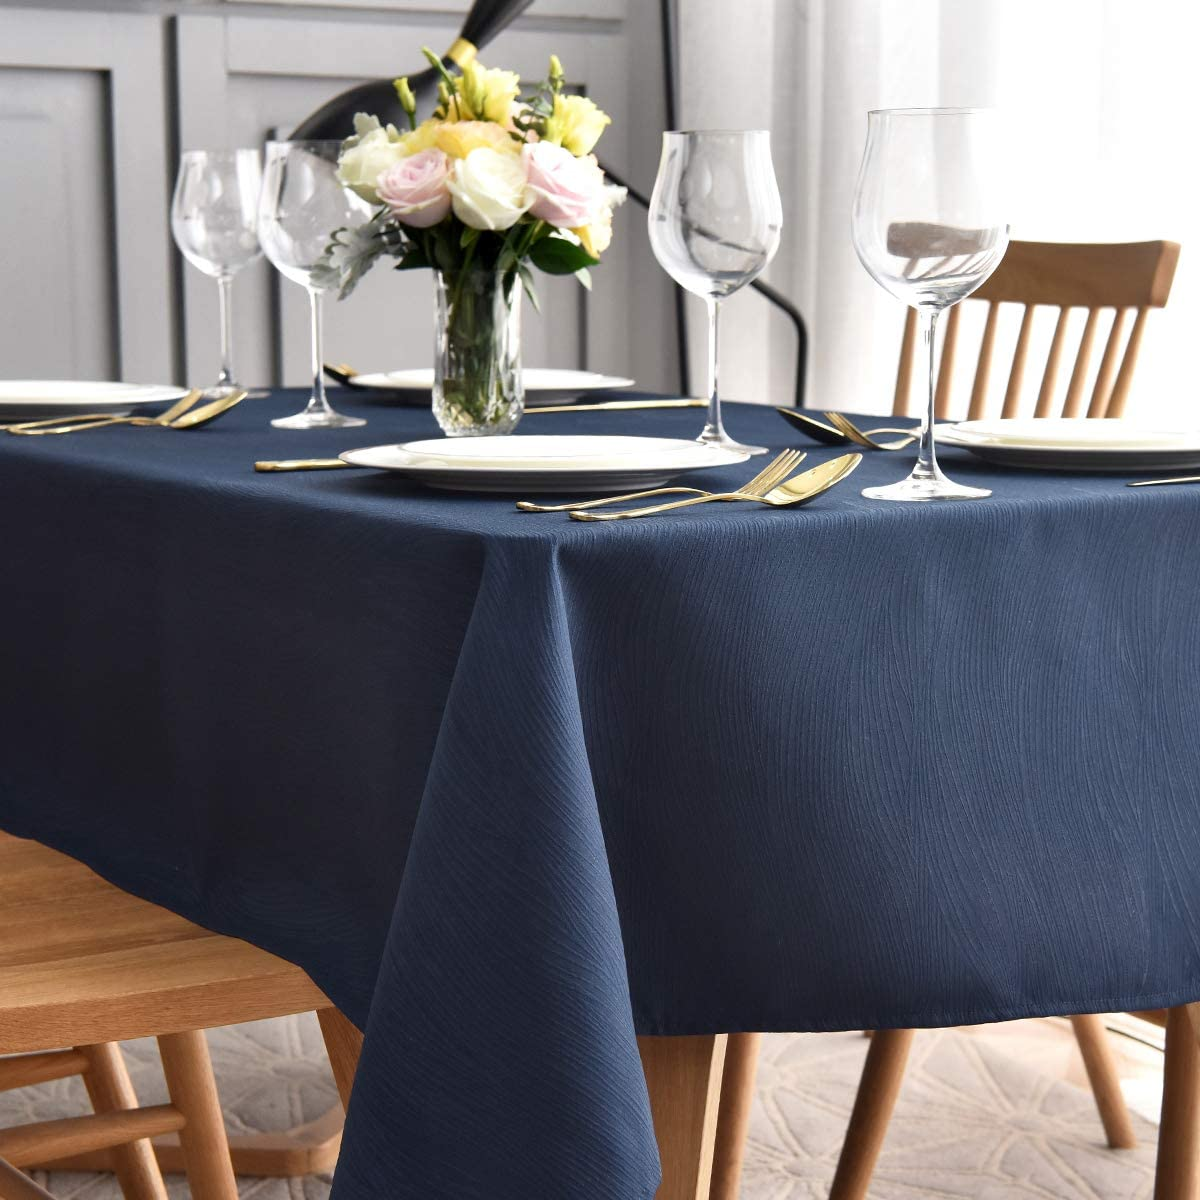 maxmill Jacquard Table Cloth Swirl Pattern Spillproof Wrinkle Resistant Oil Proof Heavy Weight Soft Tablecloth for Kitchen Dinning Tabletop Decoration Outdoor Picnic Rectangle 52 x 70 Inch Navy Blue